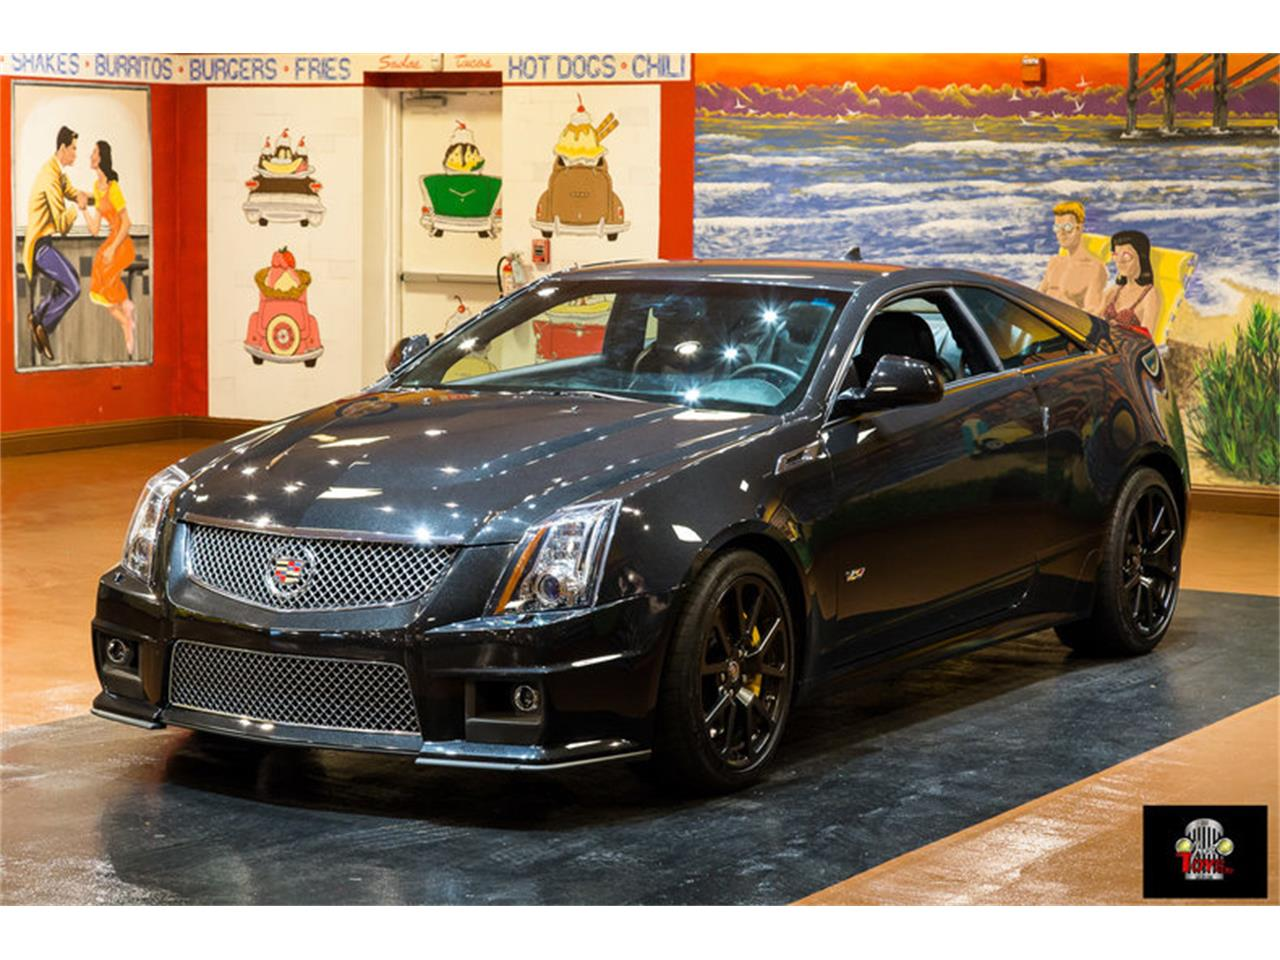 cadillac cts classic florida orlando cc classiccars cars financing inspection insurance transport